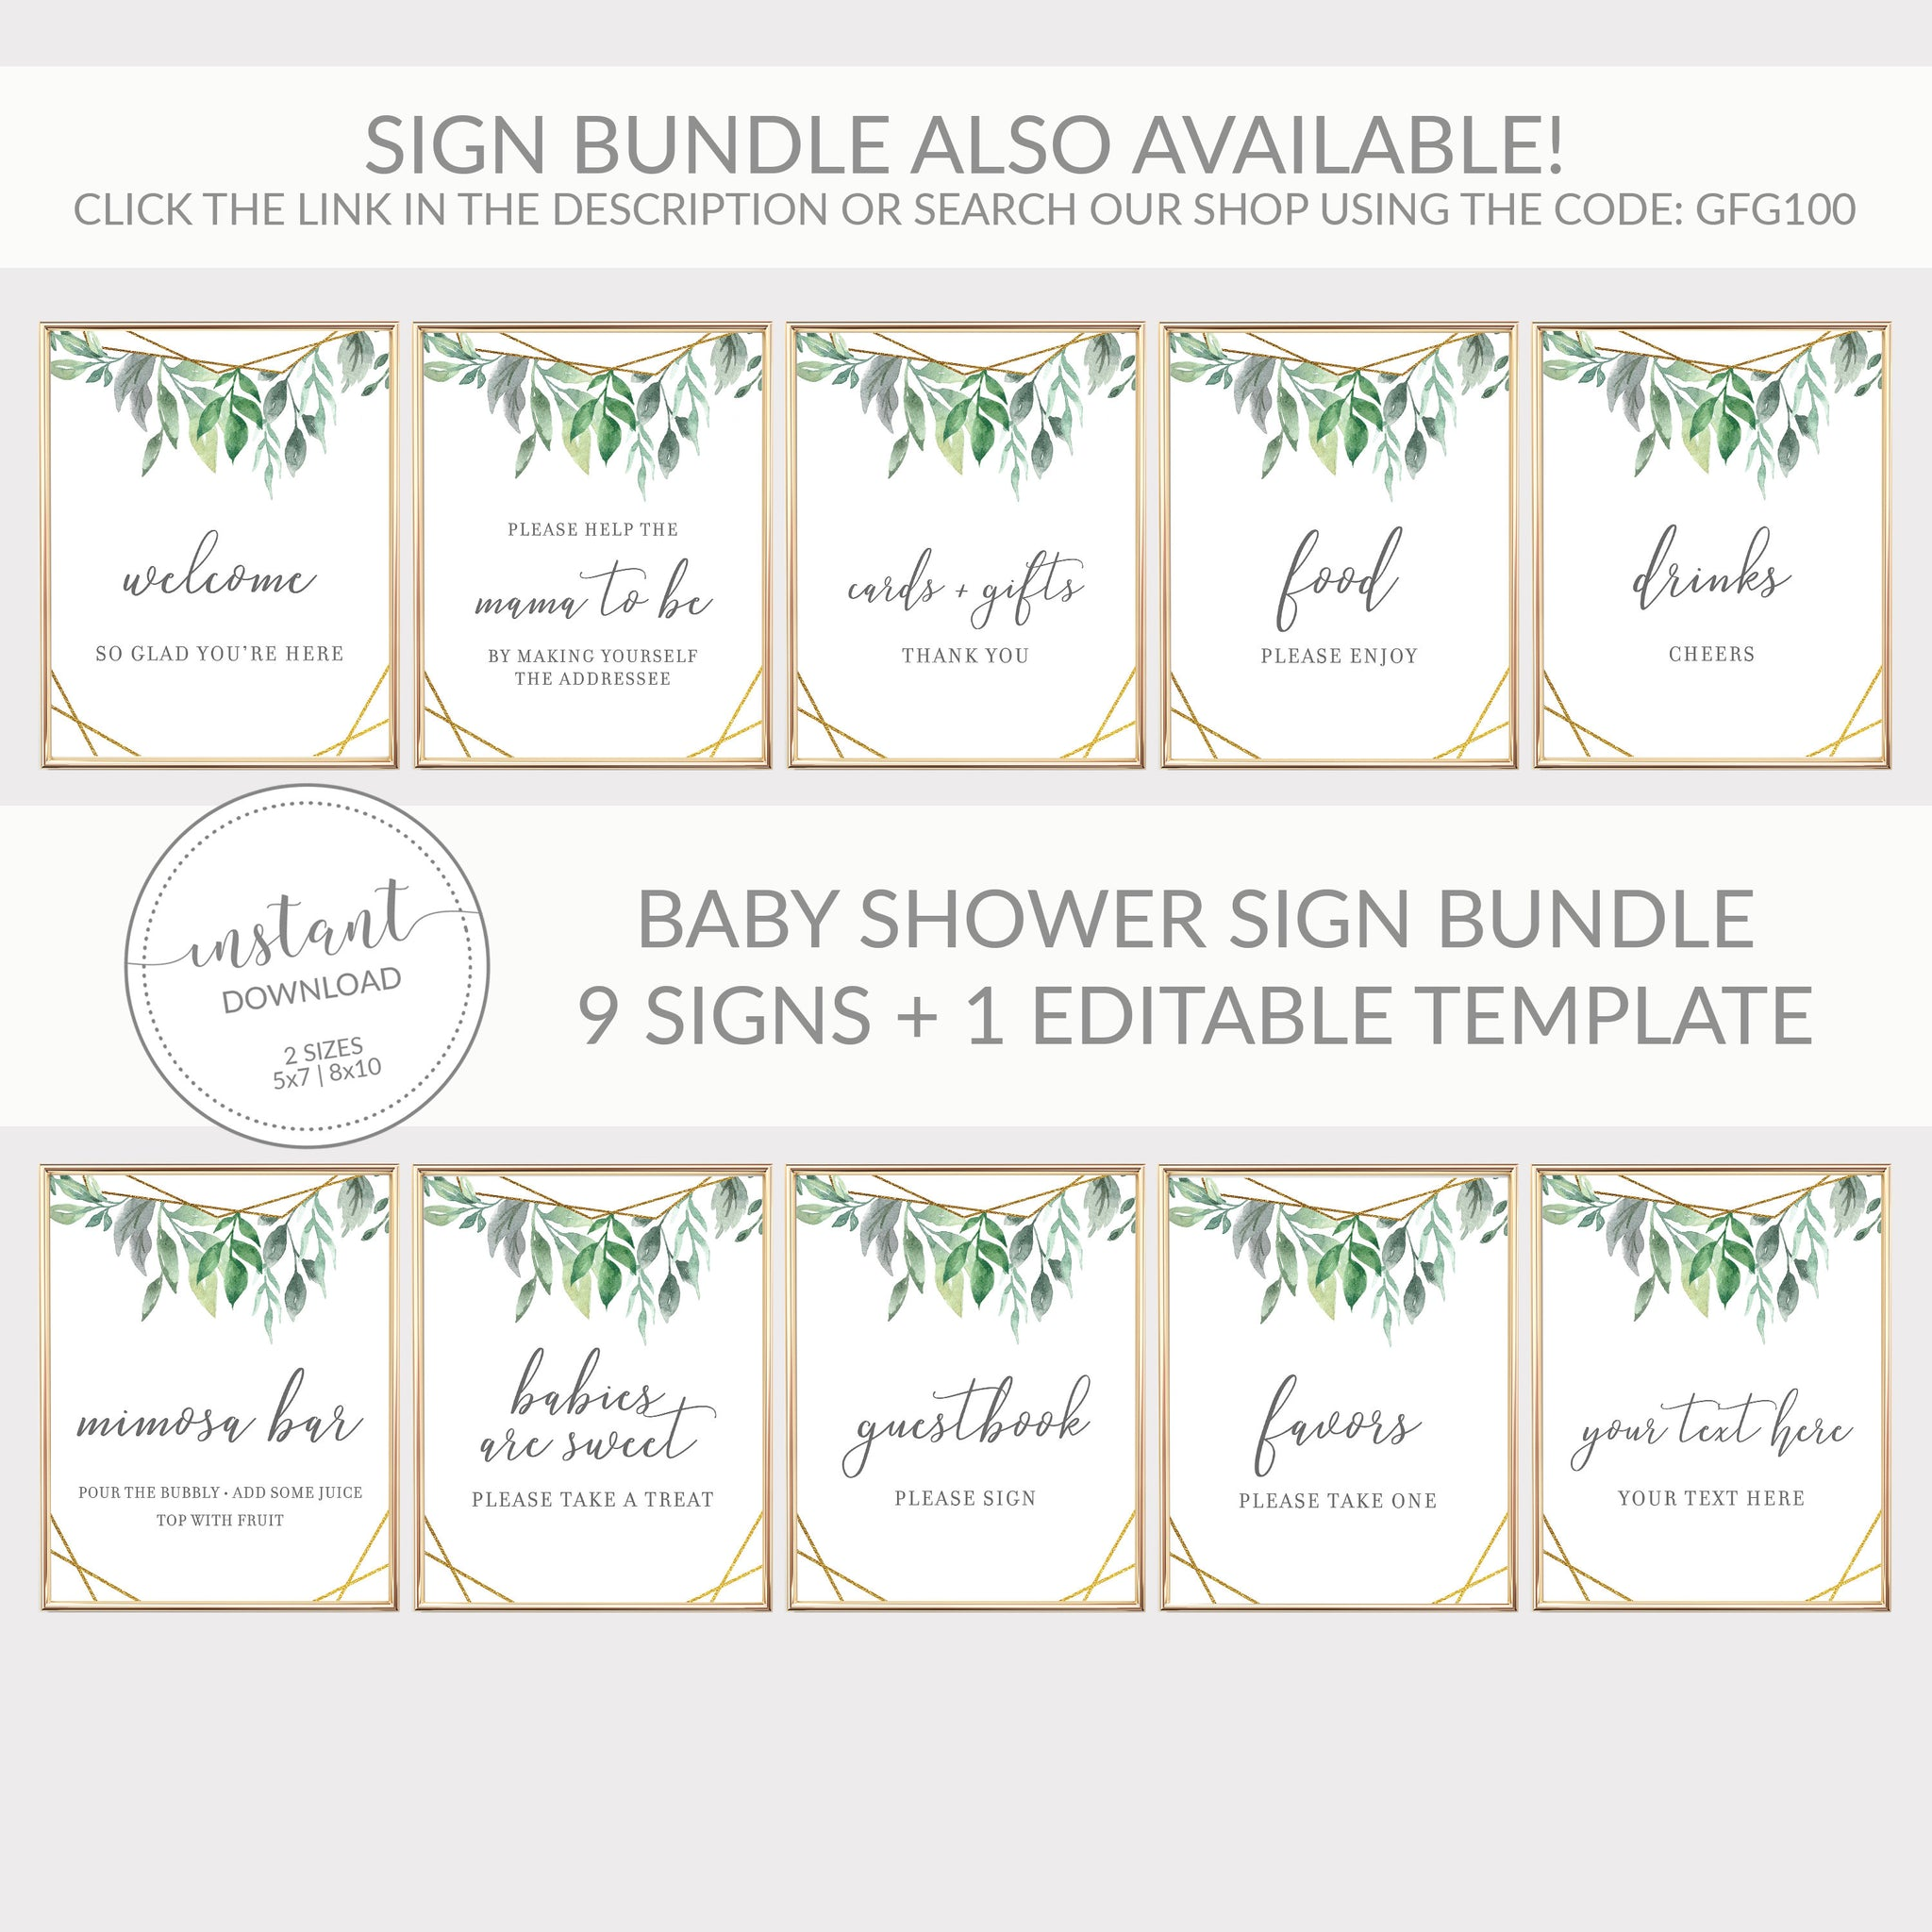 Geometric Gold Greenery Printable Drinks Sign INSTANT DOWNLOAD, Birthday, Bridal Shower, Baby Shower, Wedding Decorations Supplies - GFG100 - @PlumPolkaDot